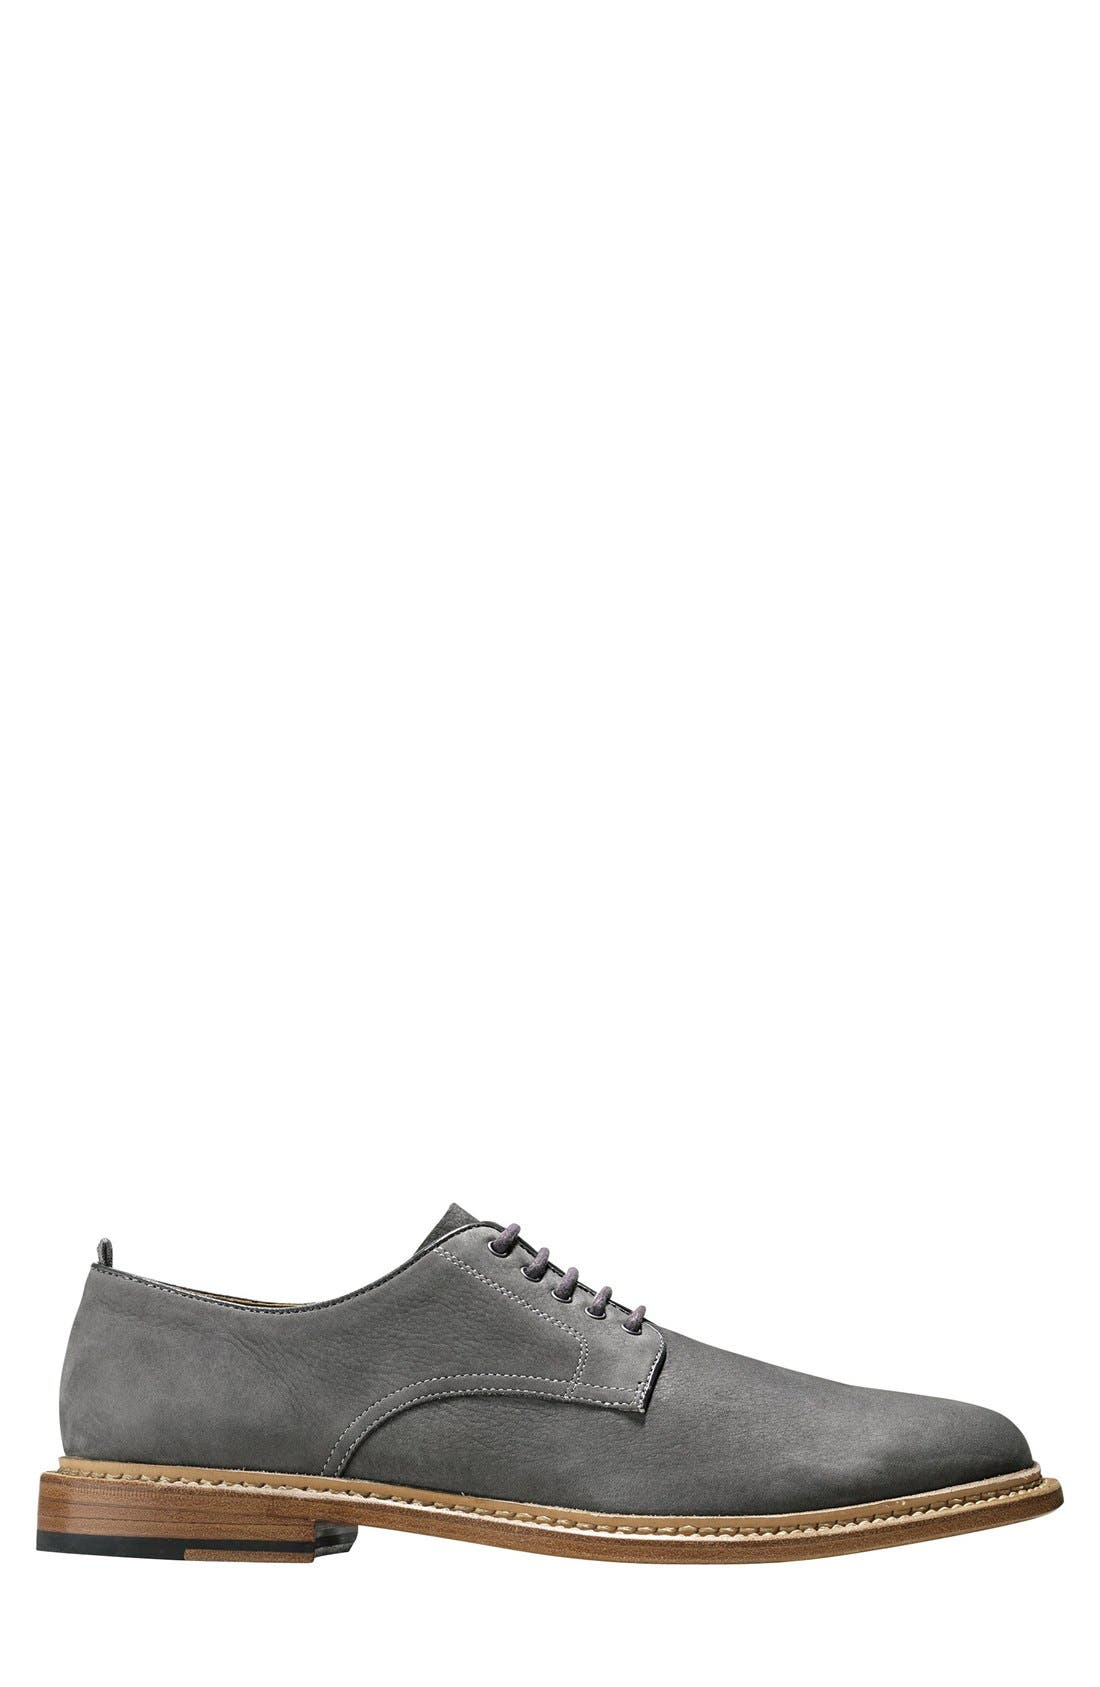 'Willet' Nubuck Plain Toe Derby,                             Alternate thumbnail 3, color,                             025